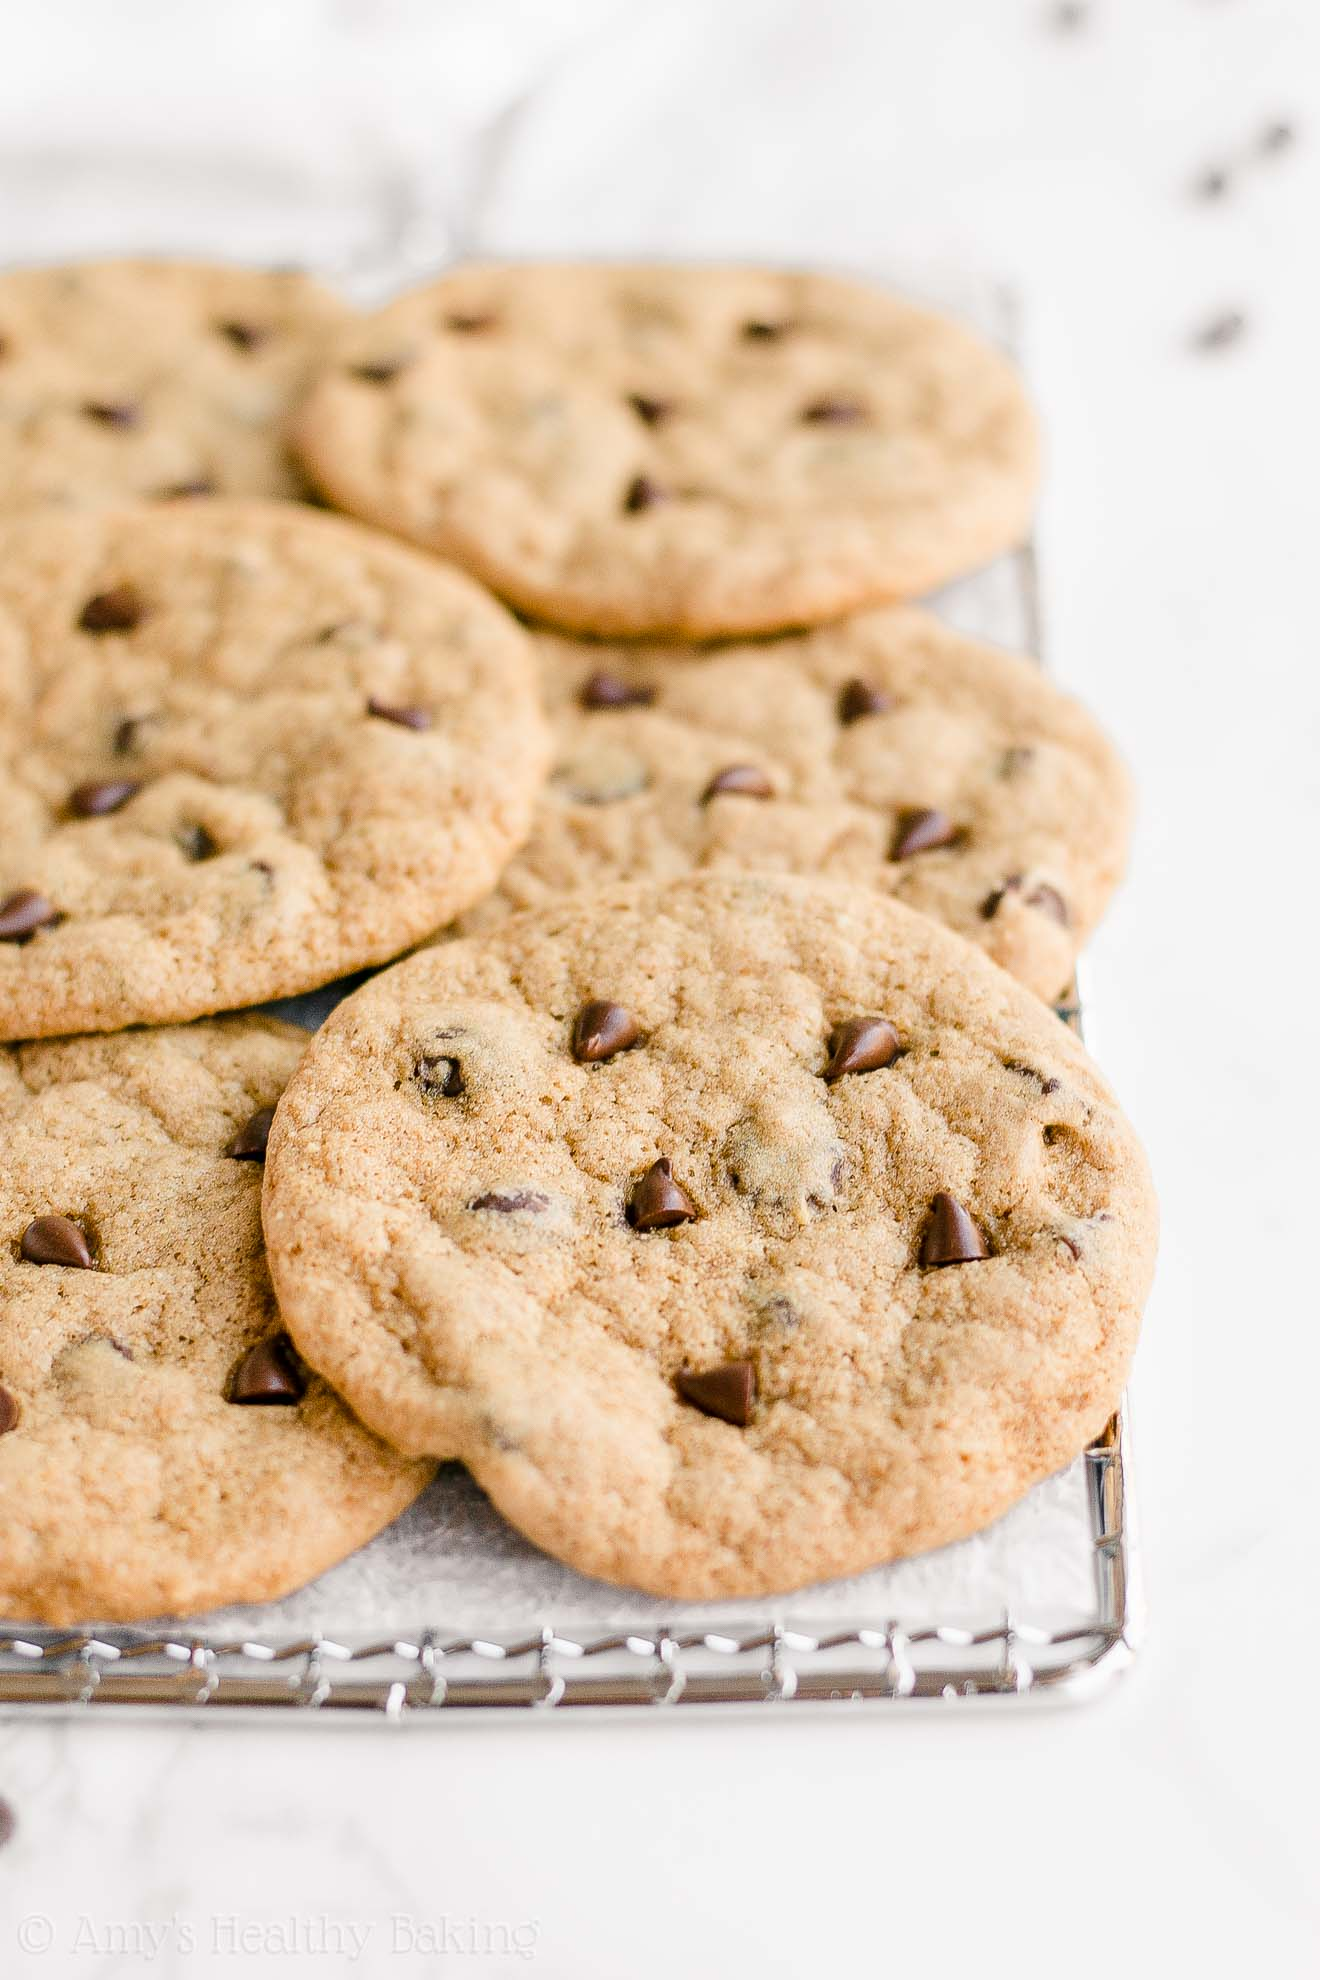 Best Healthy One-Bowl Chocolate Chip Cookies with Weight Watchers Points